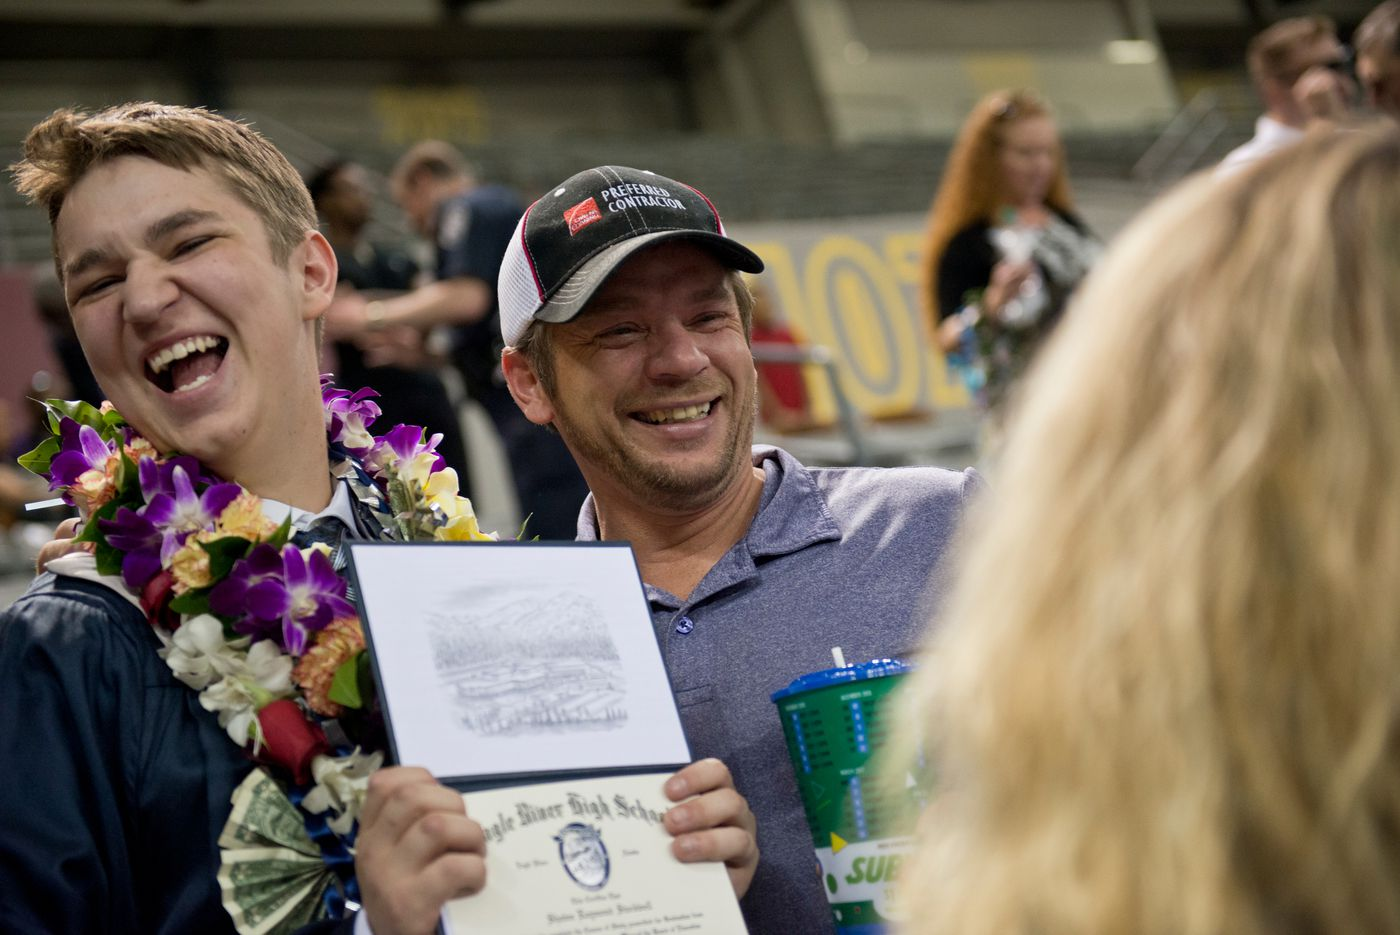 Shawn Stockwell, left, laughs with his father, George, after receiving his high school diploma. (Marc Lester / Alaska Dispatch News)